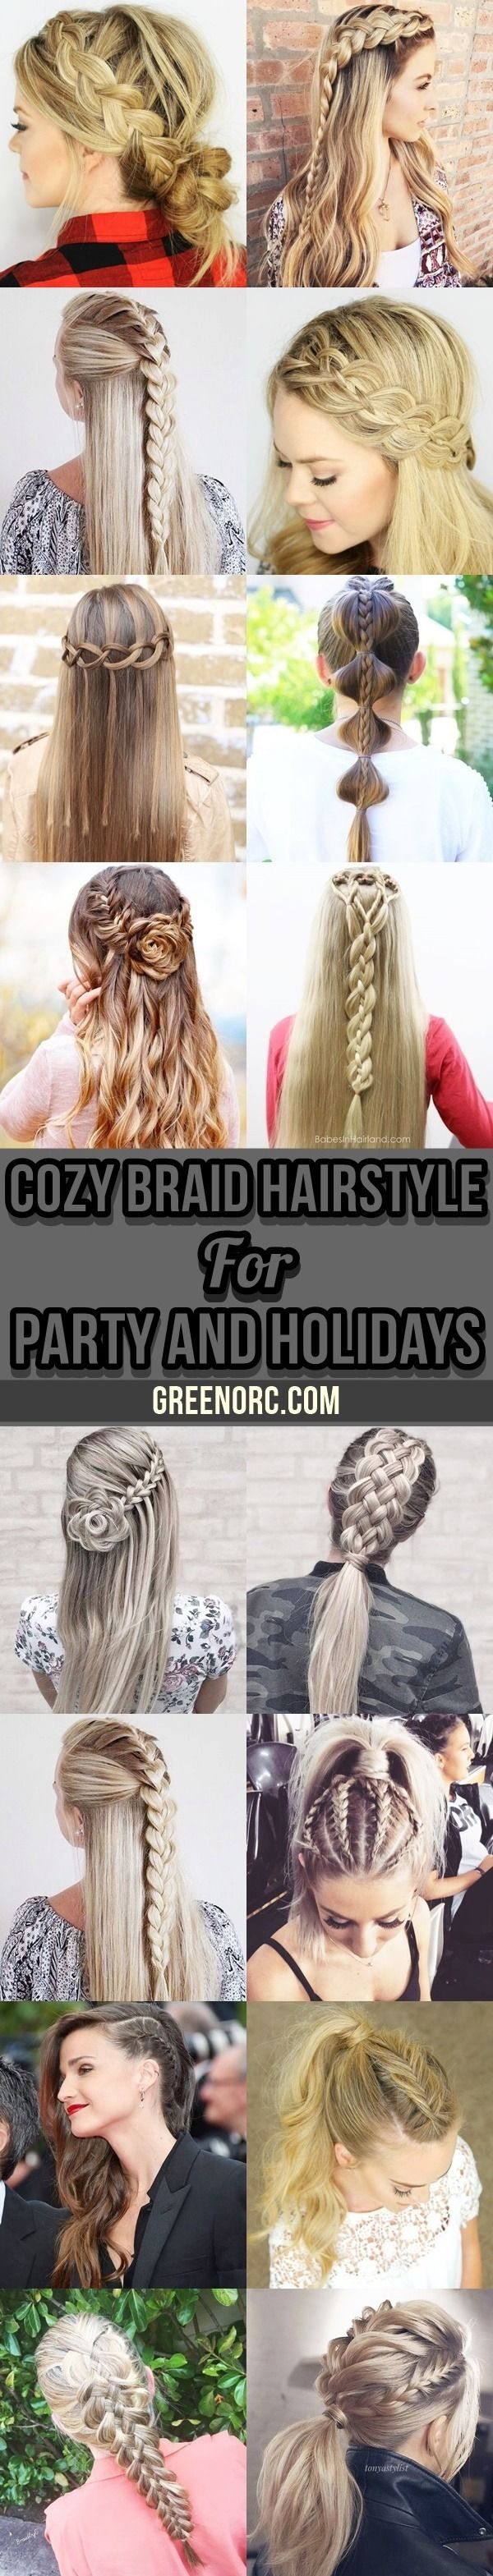 40 cozy braid hairstyle for party and holidays